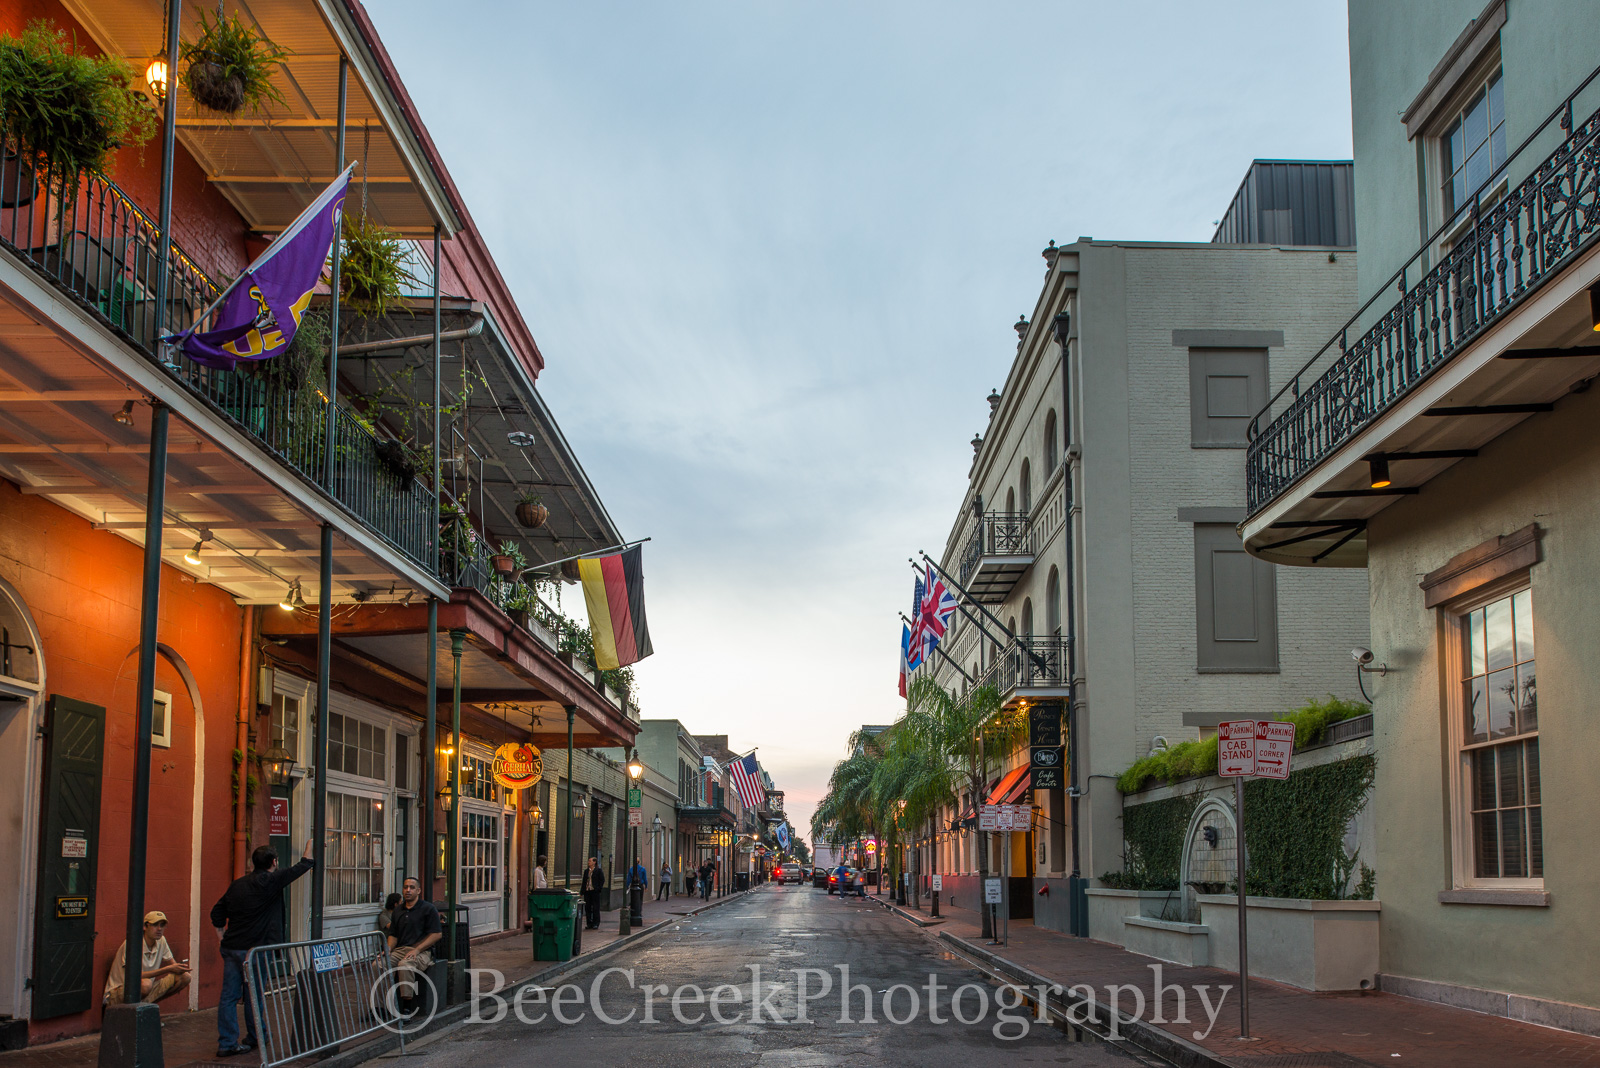 French Quarter, New Orleans, city, morning, people, street scene, New Orleans cityscapes, , photo